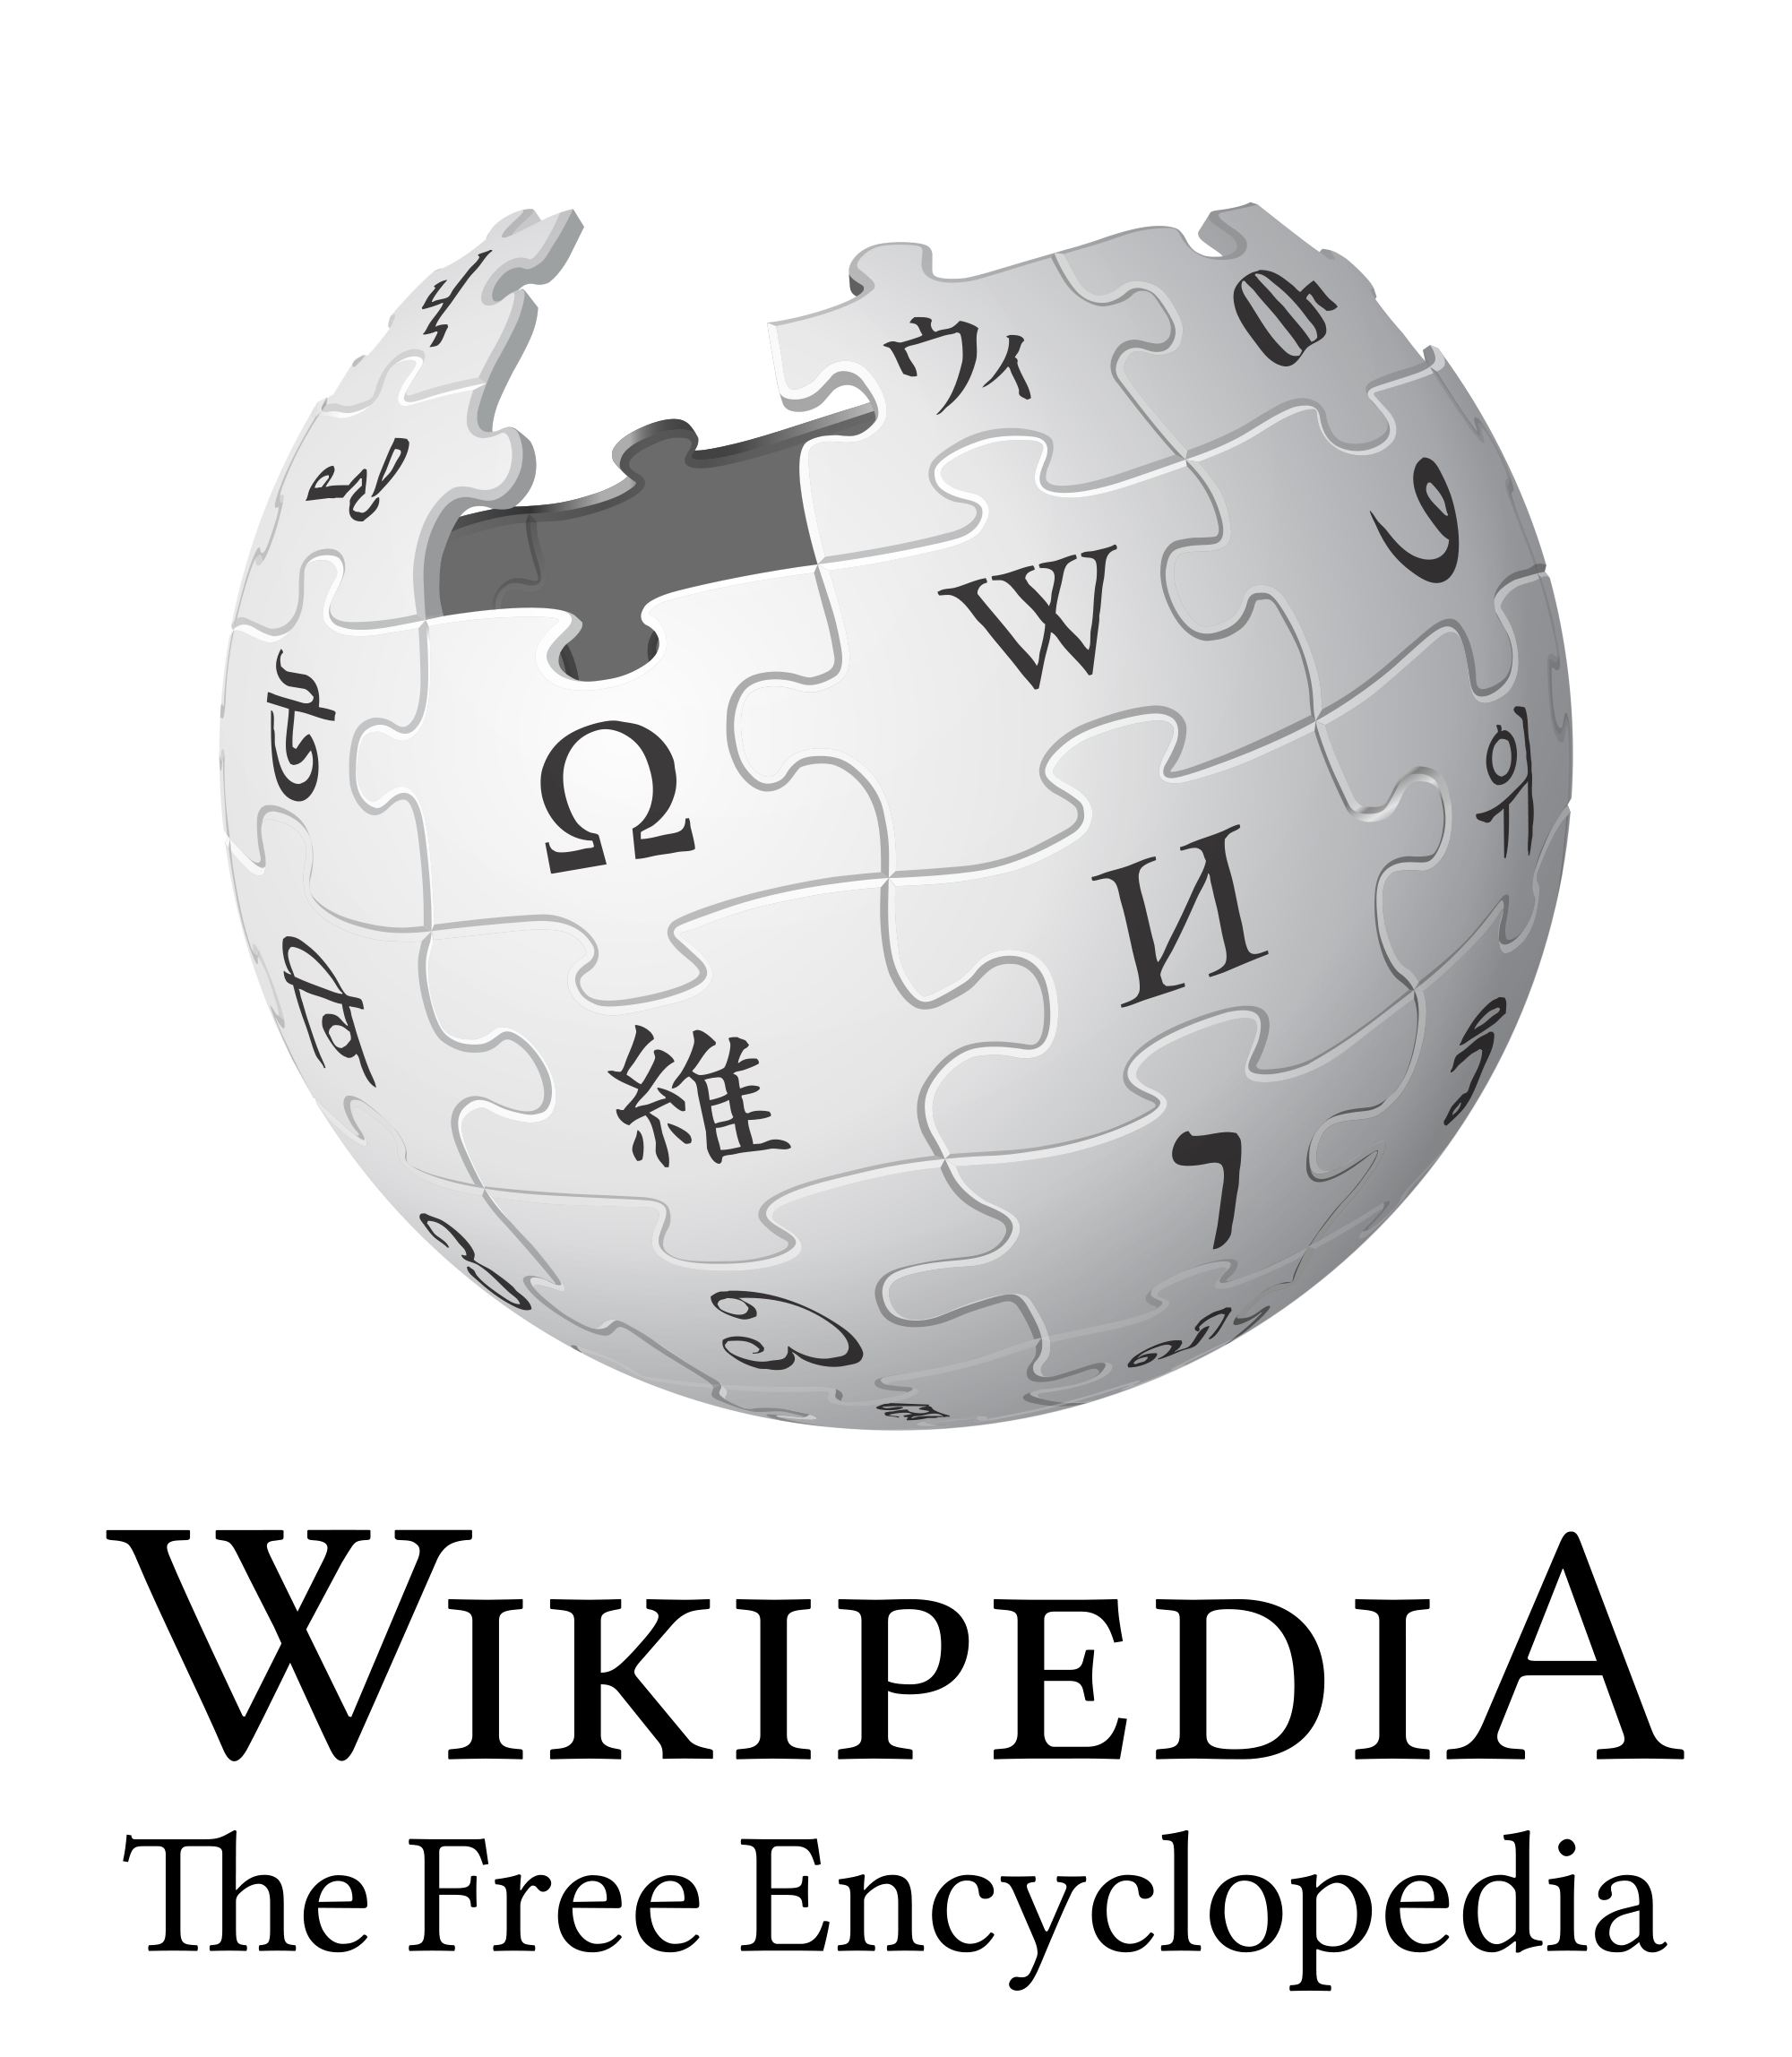 wikipedia-logo-Transparent-Background